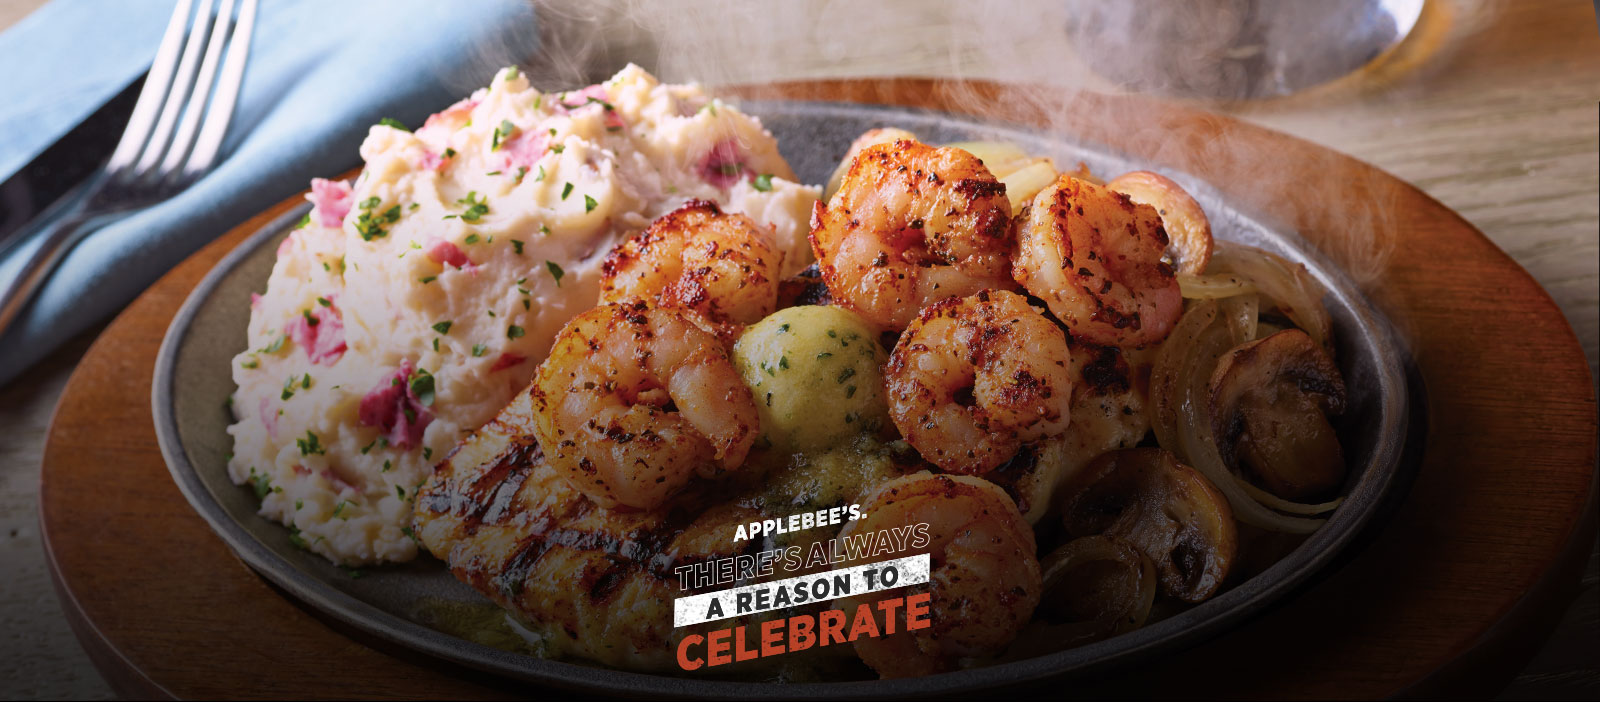 There's Always A Reason To Celebrate - Applebee's Grill and Bar Niagara Falls